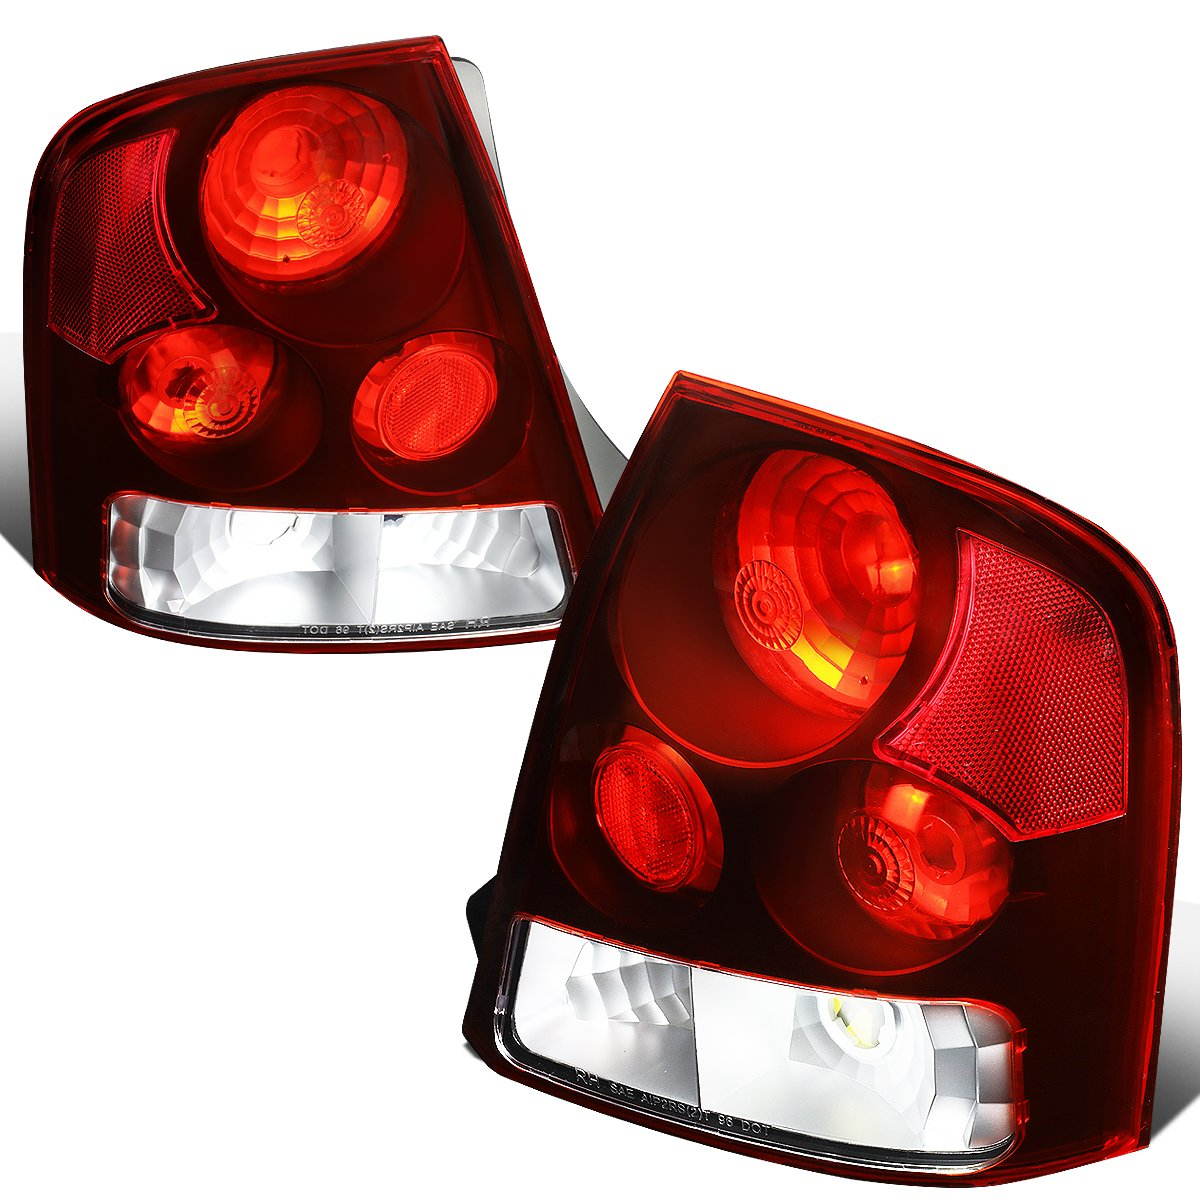 Amazon.com: For 1999-2003 Mazda Protege Red Lens Altezza Style Tail Light  Brake/Parking Lamps: Automotive